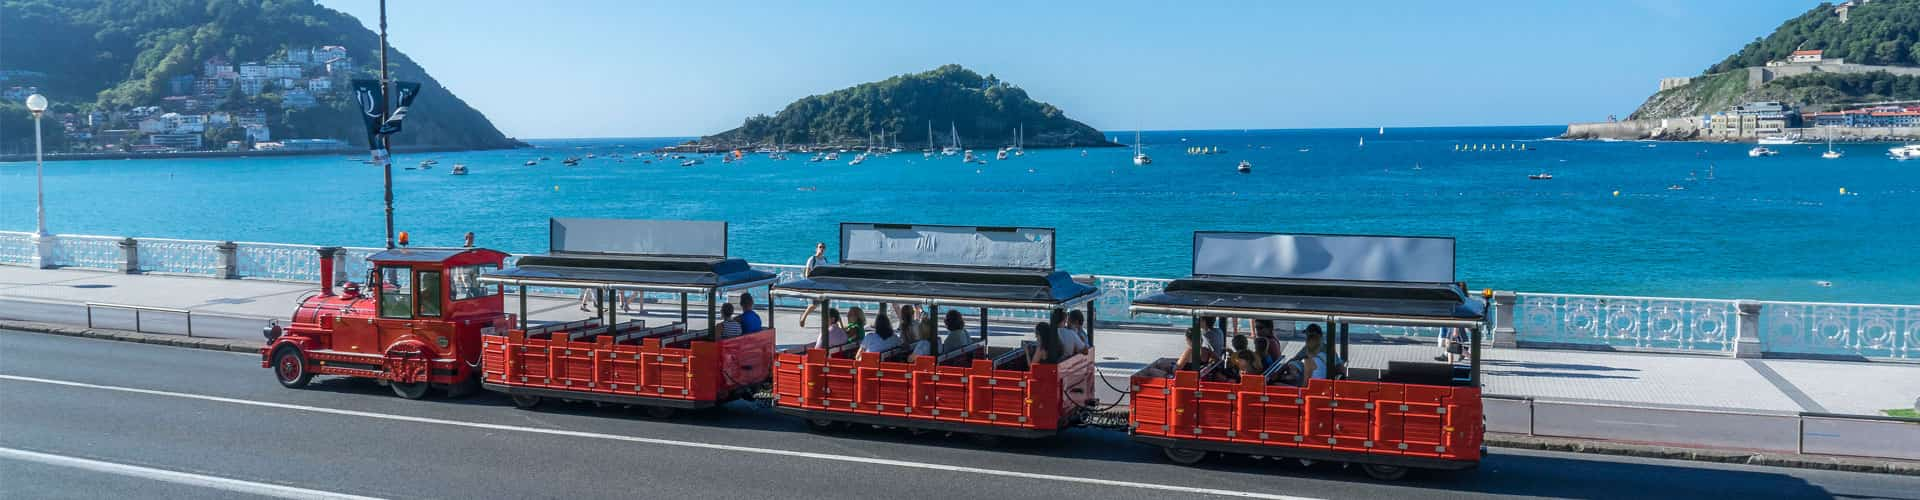 San Sebastián City Tour Train